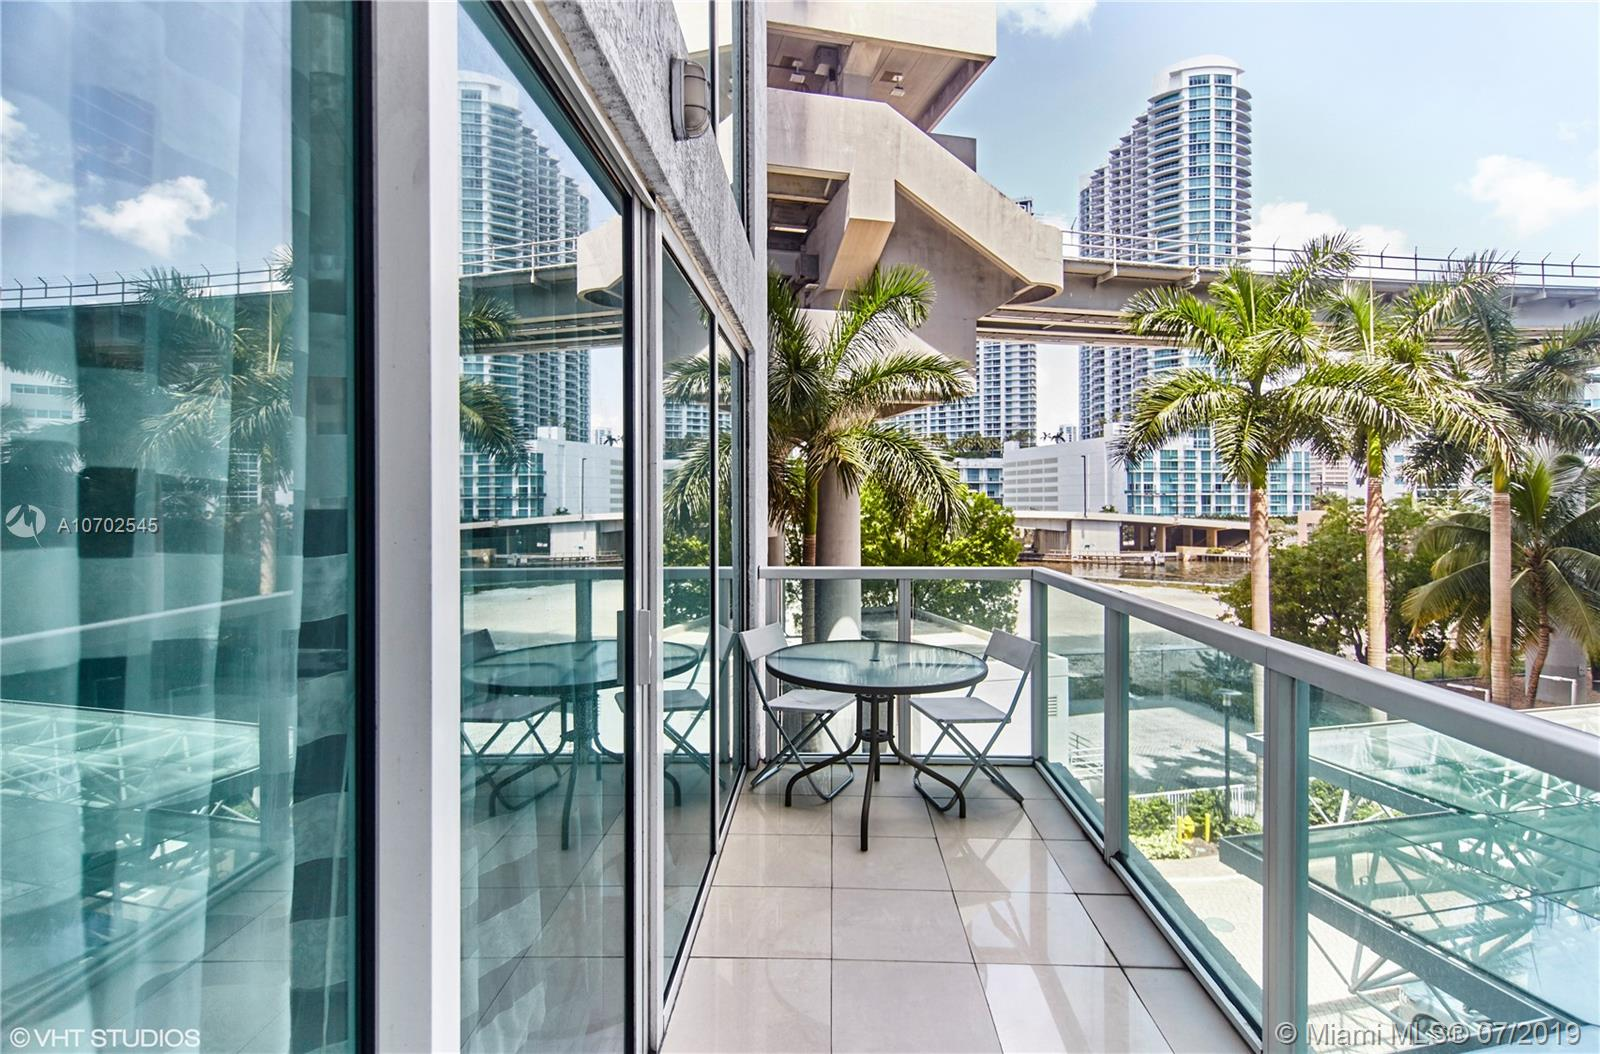 Brickell on the River South image #9